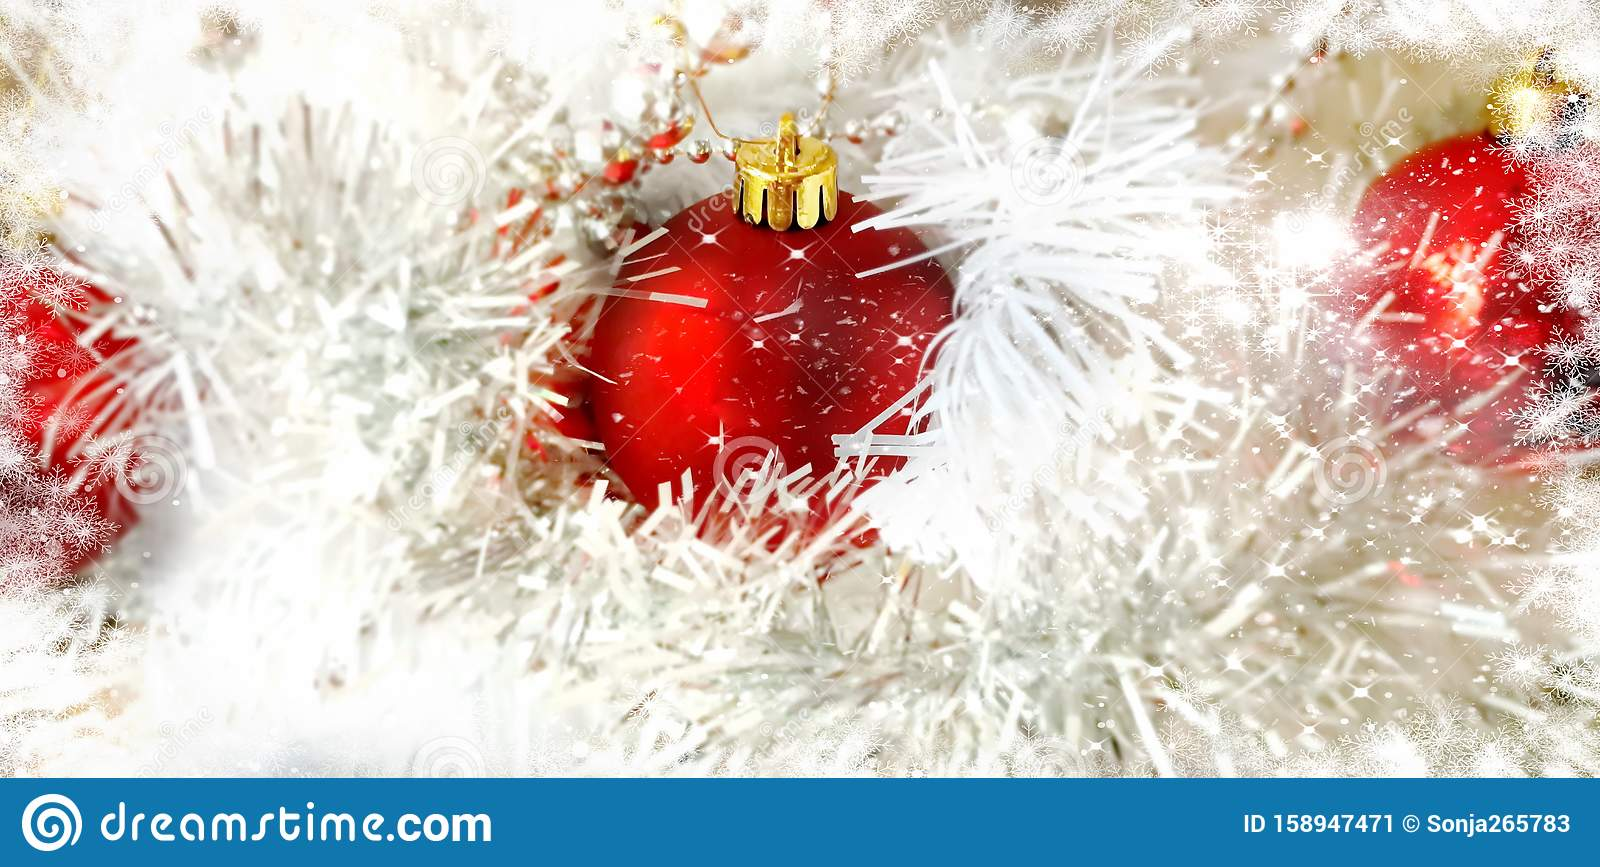 Christmas Wallpaper Holiday White Gold Silver Red Green Balls With